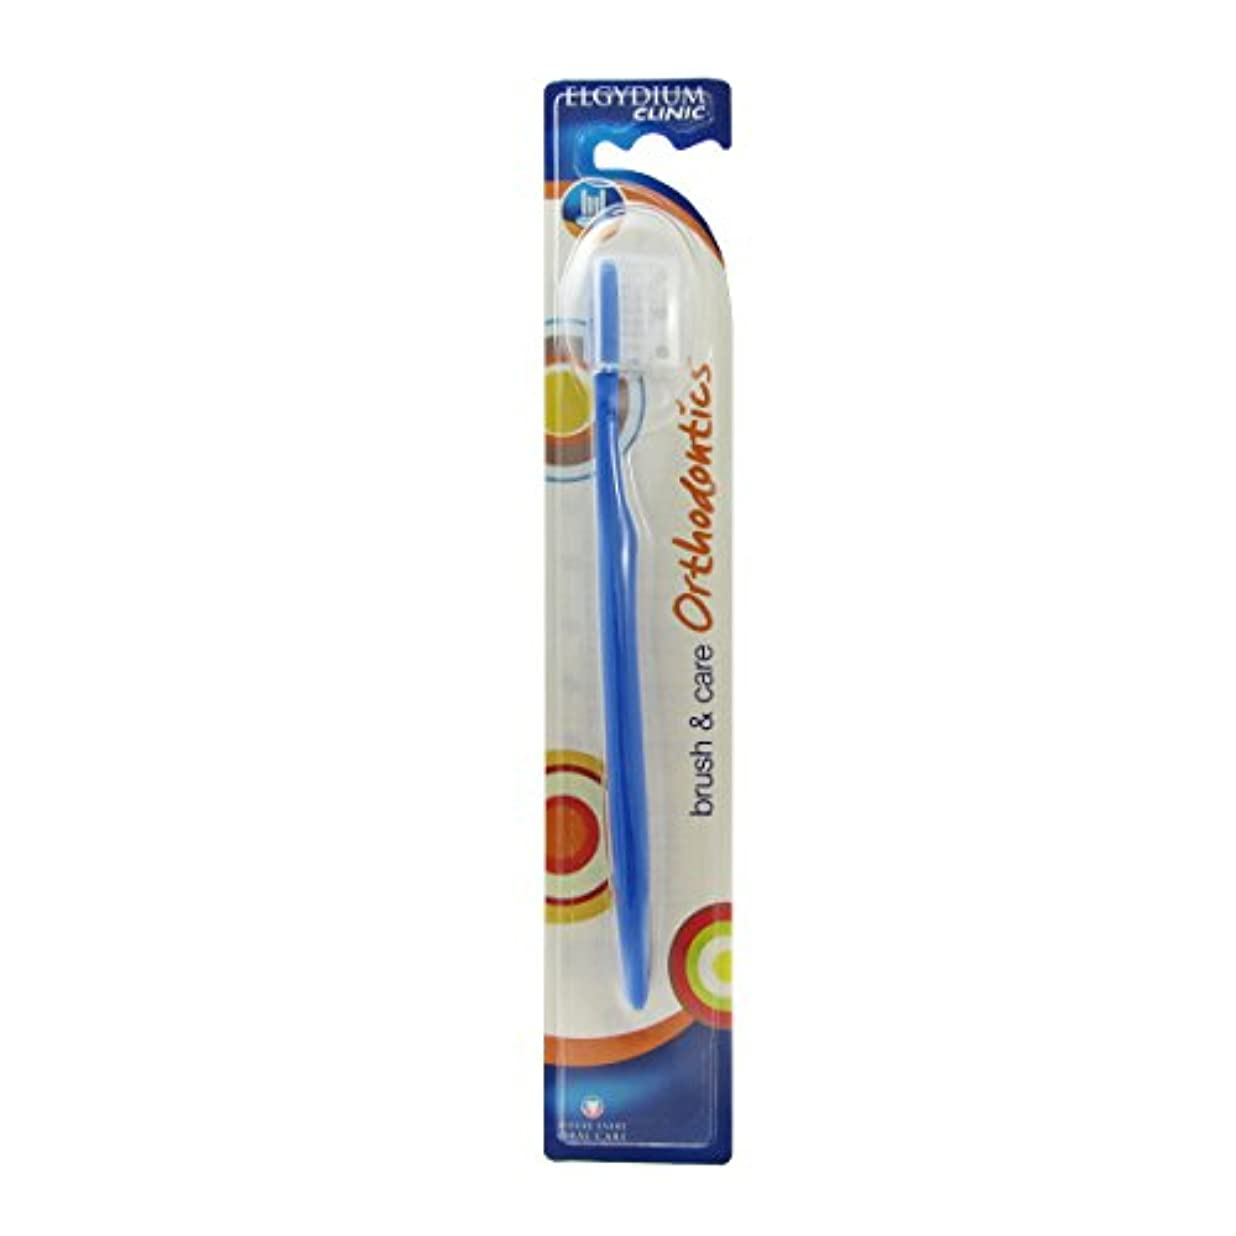 数字農奴理由Elgydium Clinic Orthodontics Orthodontic Medium Children Toothbrush [並行輸入品]